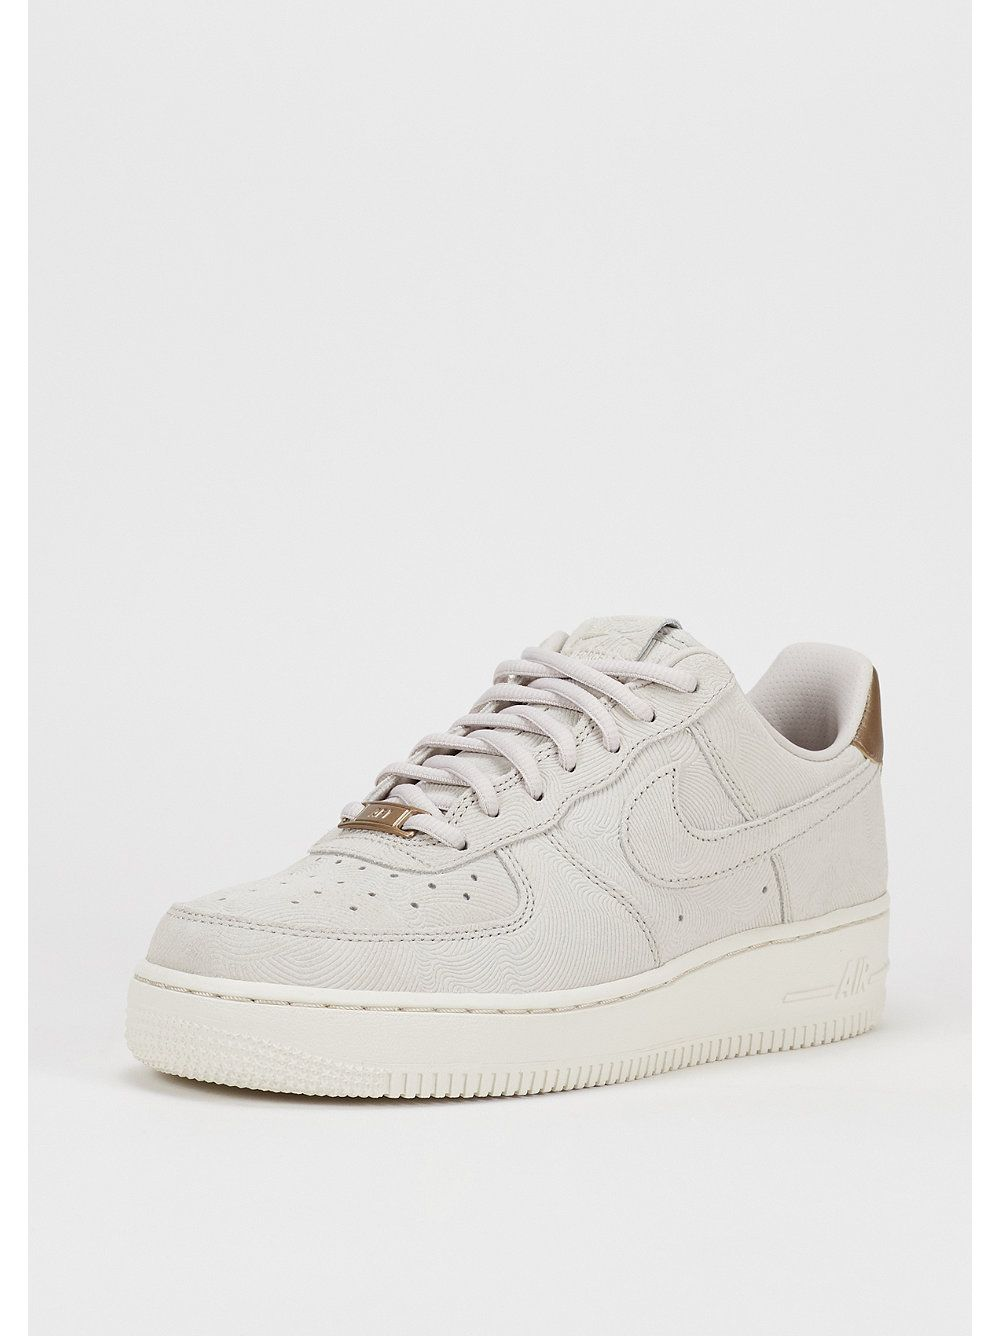 best website c9484 6474b NIKE Schuh Wmns Air Force 1 07 Premium Suede gamma grey/gamma grey/Phantom  > perfect ♥